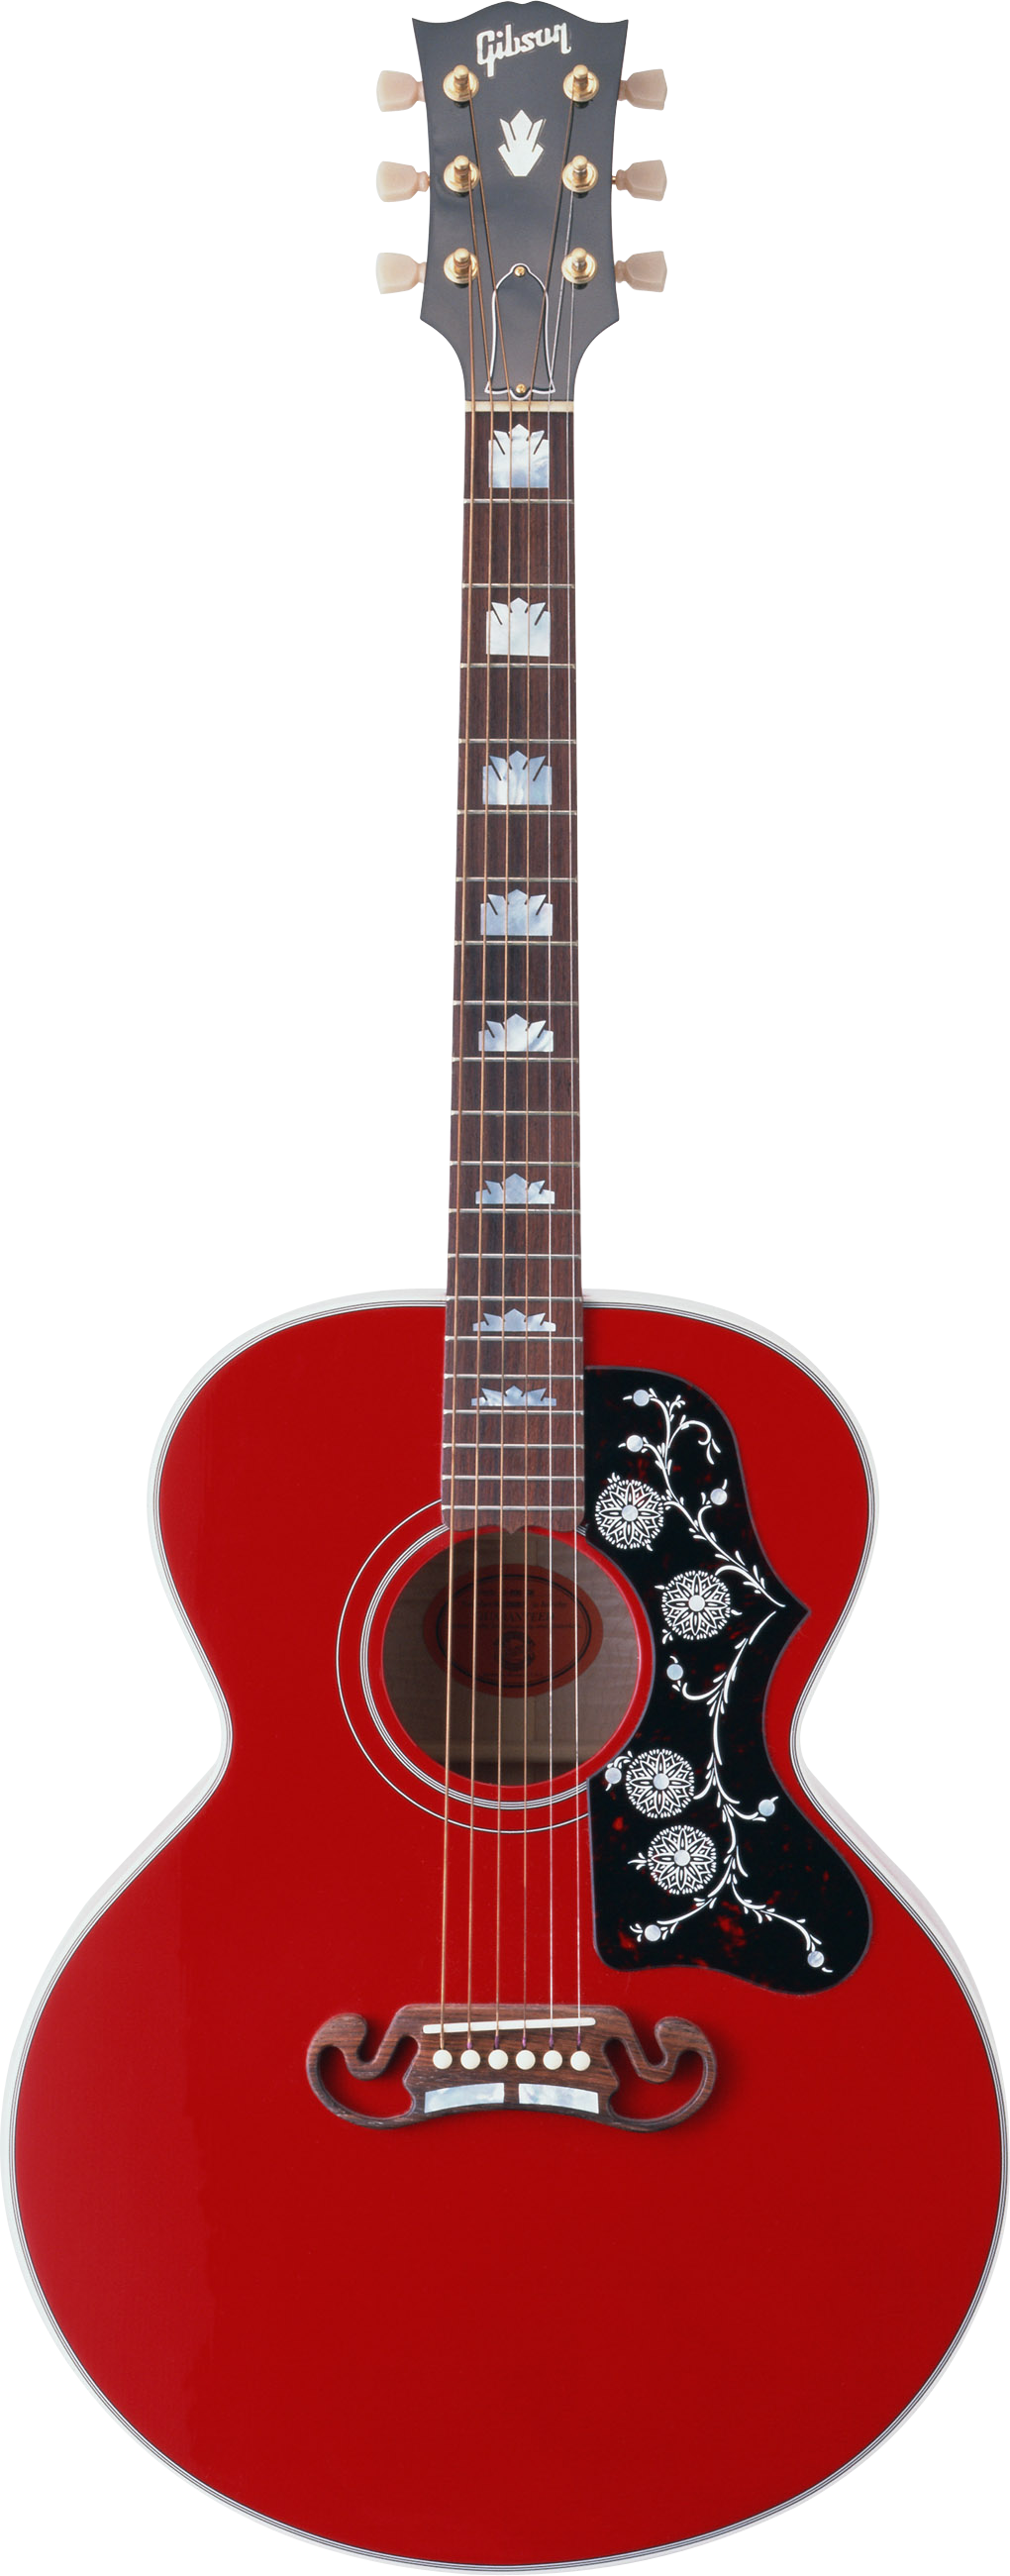 Gibson electric guitar png. Images free picture download